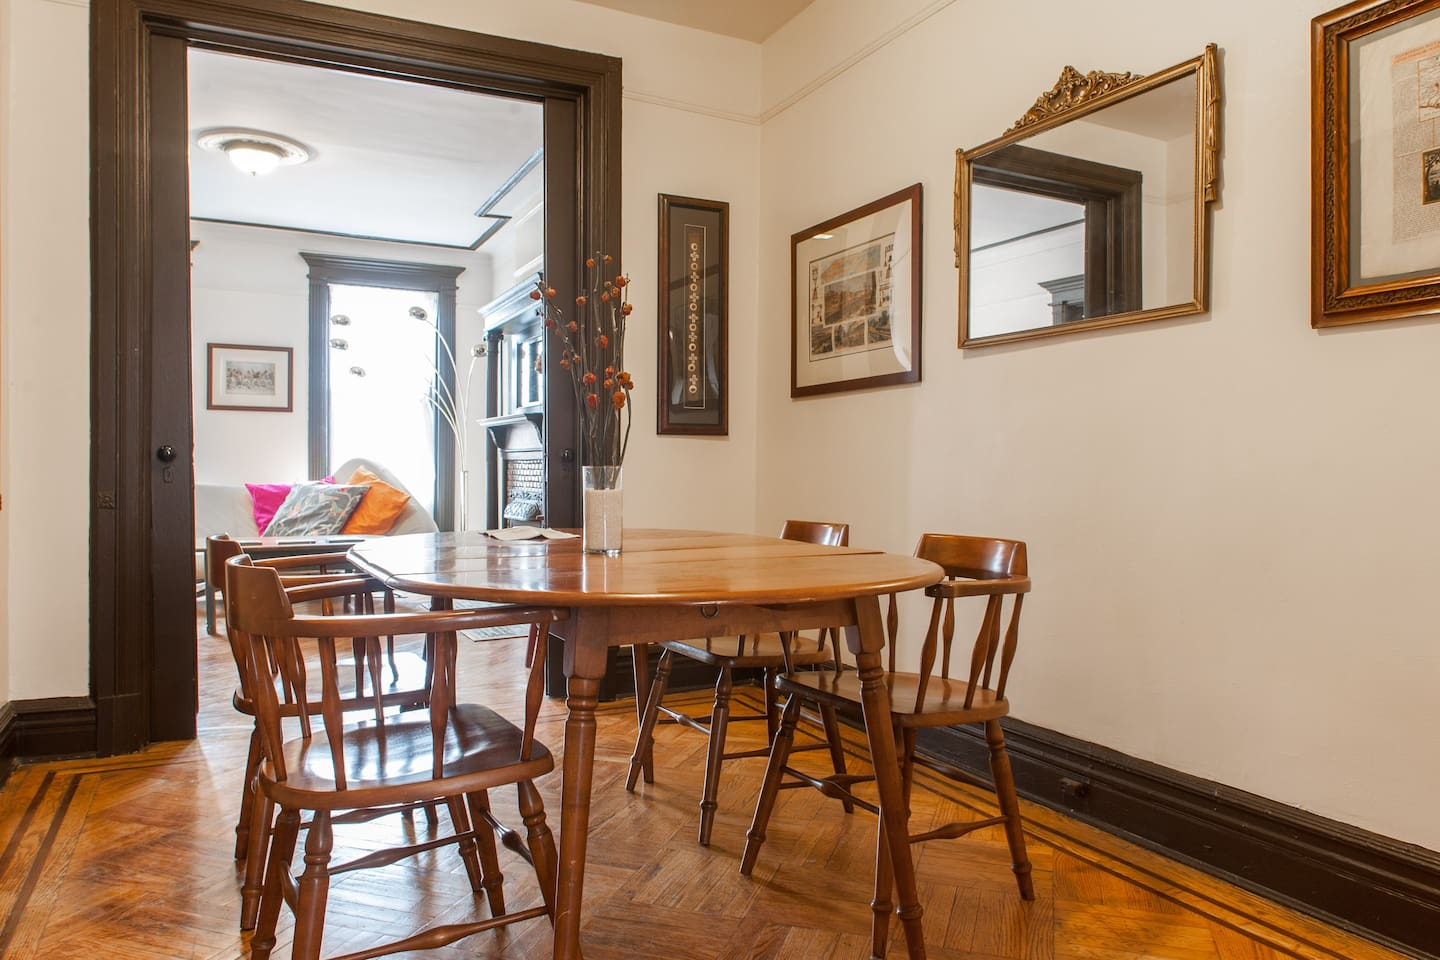 Brooklyn Entire Home Apt 2 Beds 7 GuestsElegant Quiet Spacious 2BD Brownstone NYC